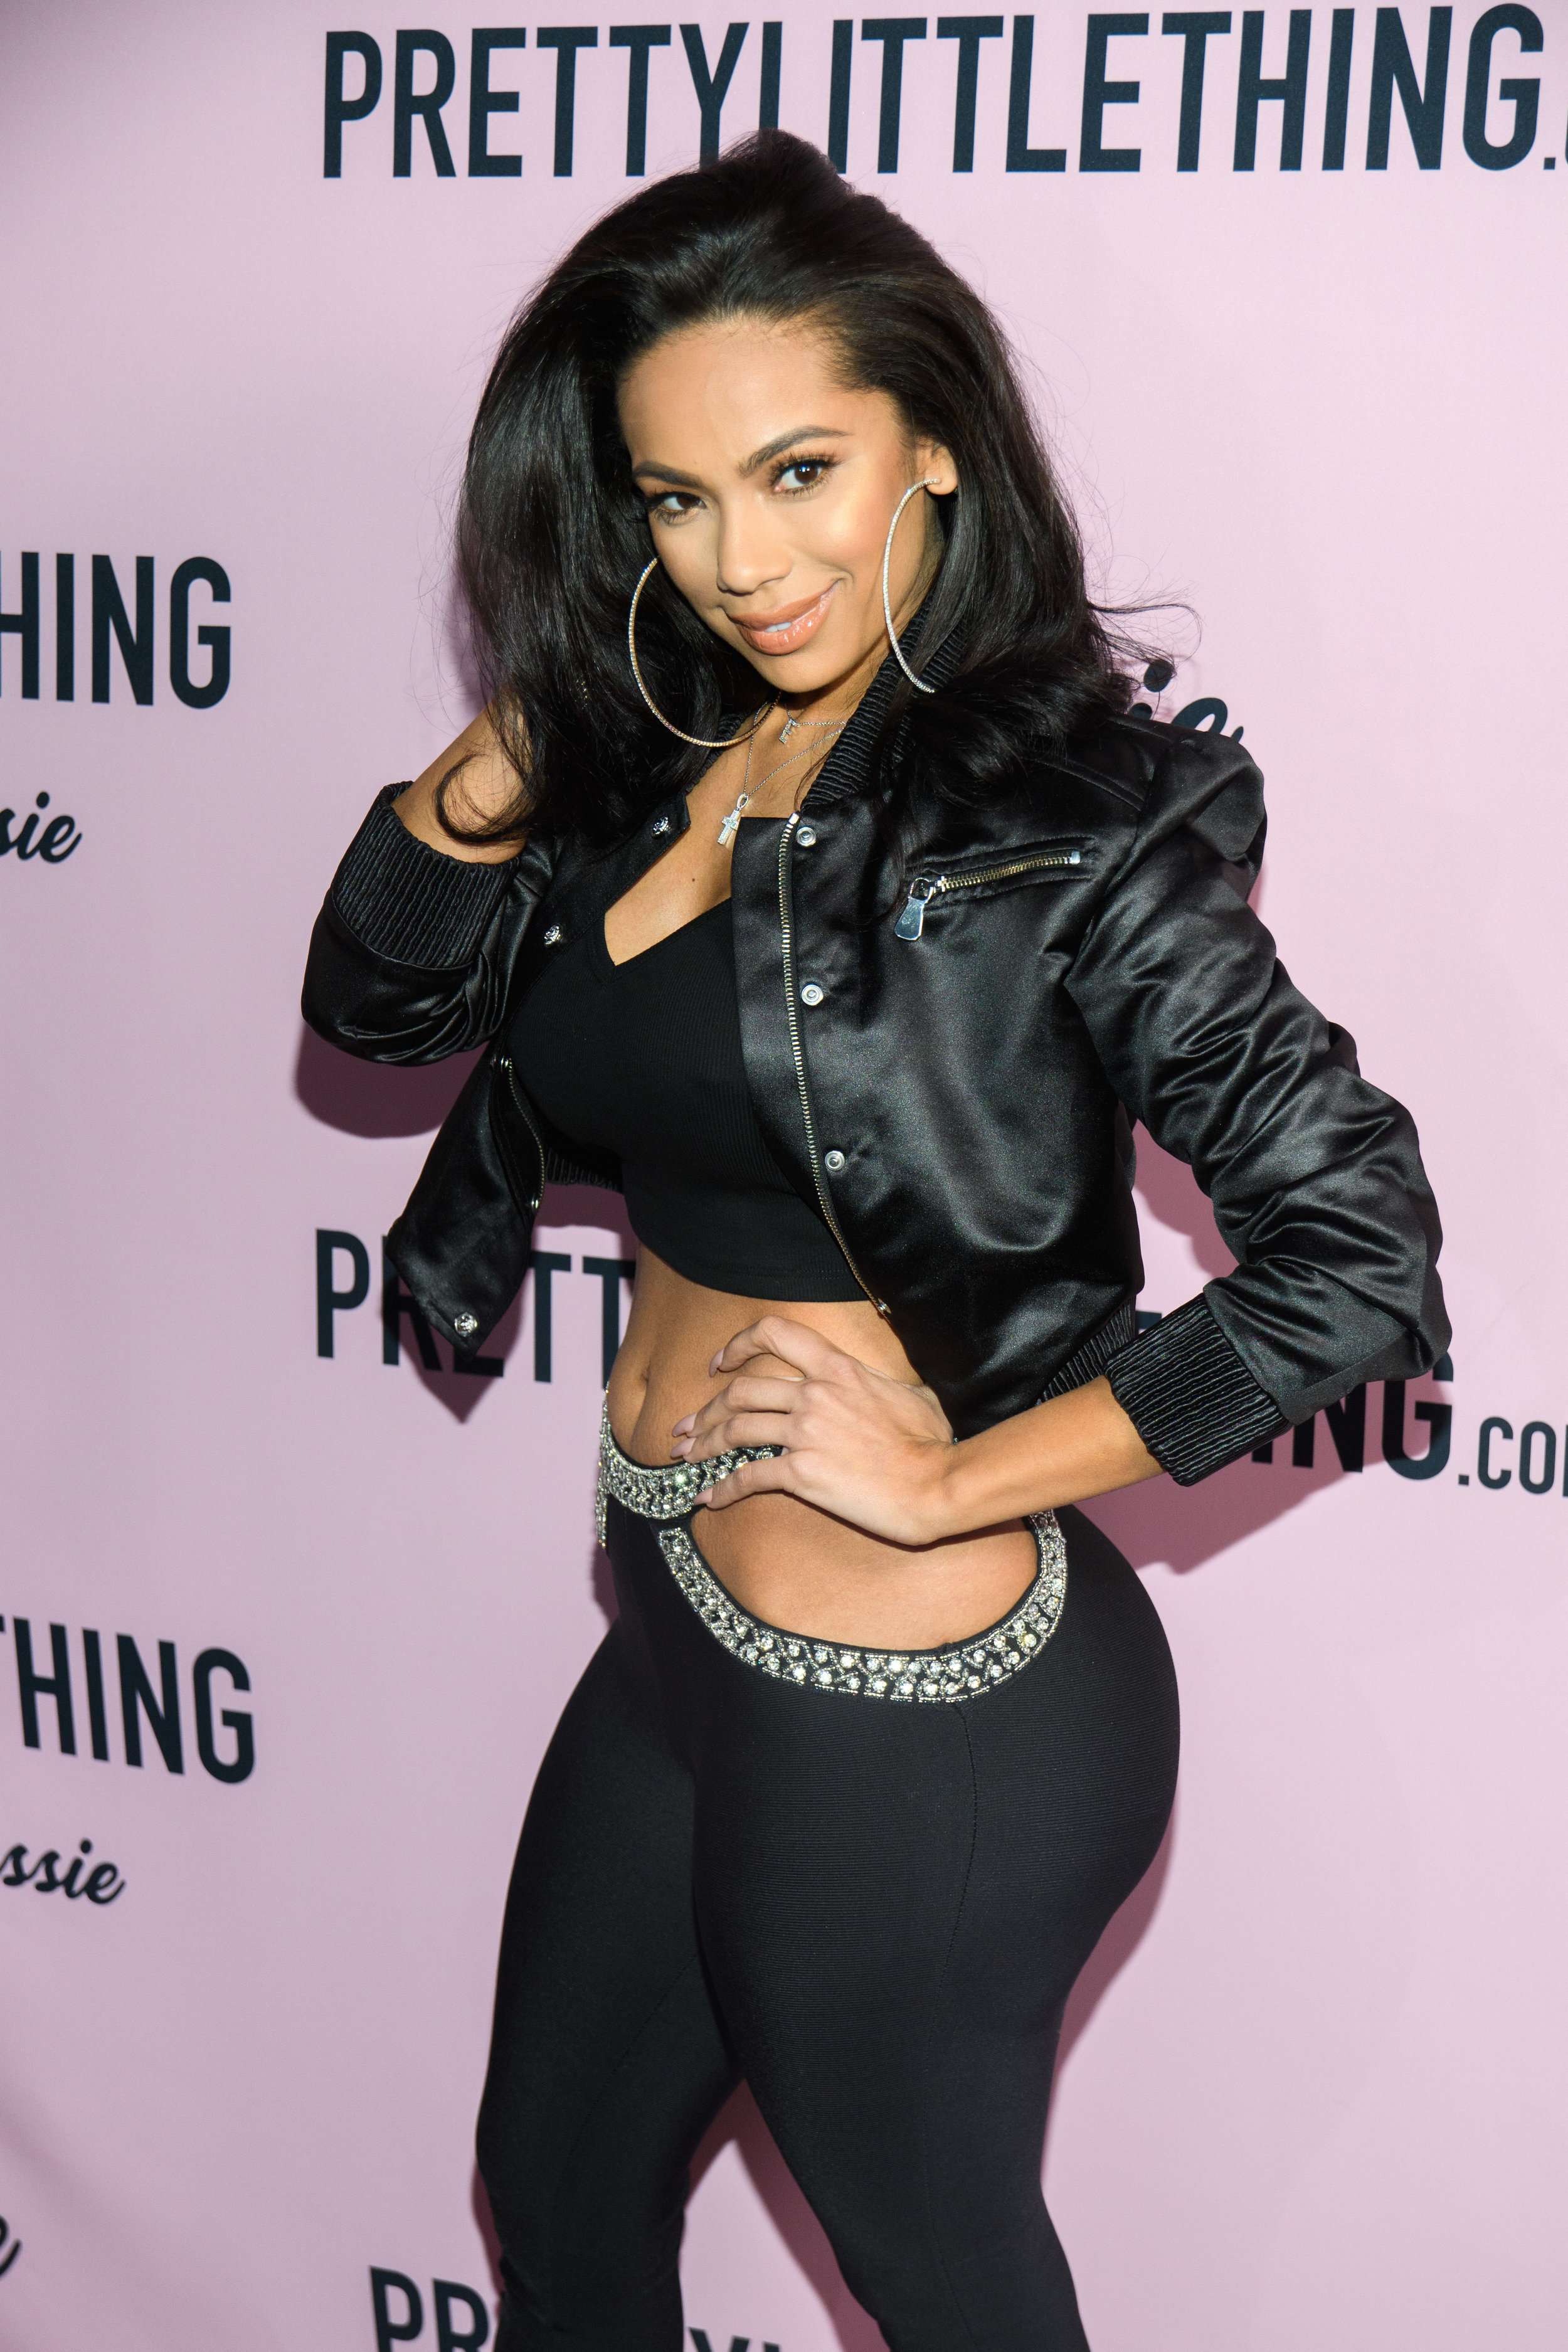 PrettyLittleThing New PLT Shape Collection with Stassie Celebrity Launch Party Erica Mena.jpg